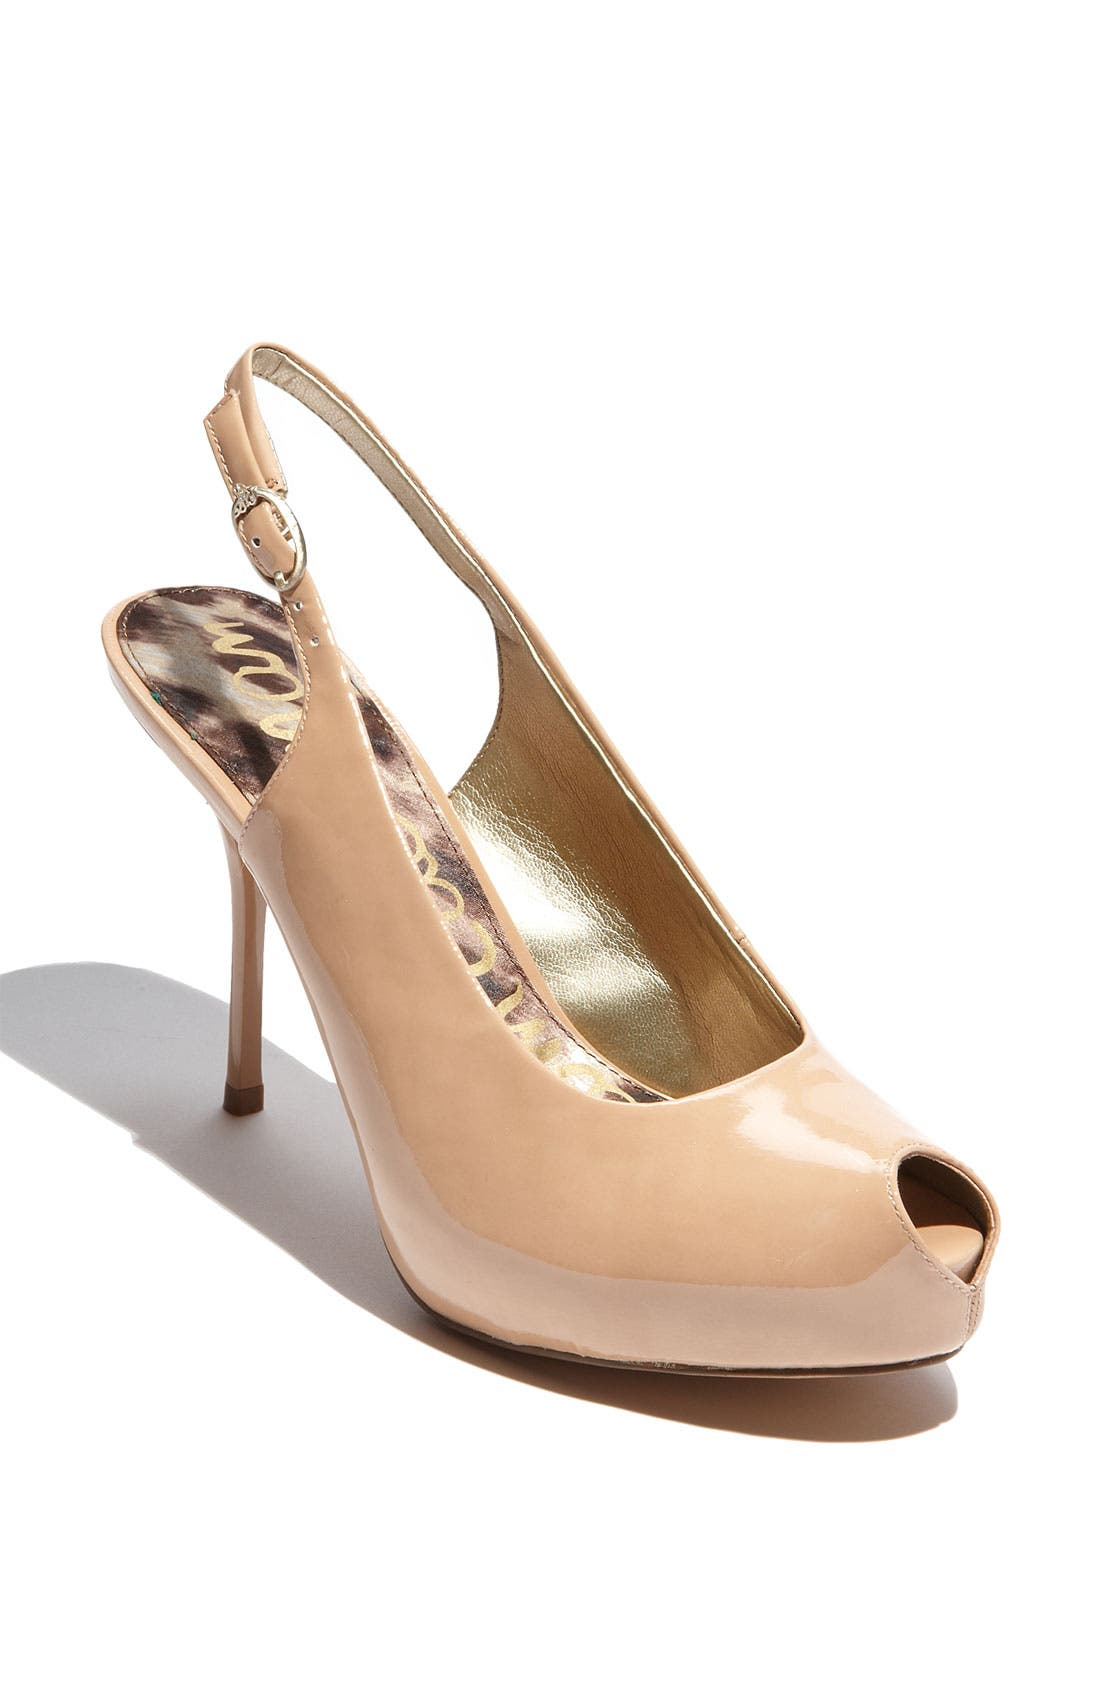 Main Image - Sam Edelman 'Evelyn' Pump